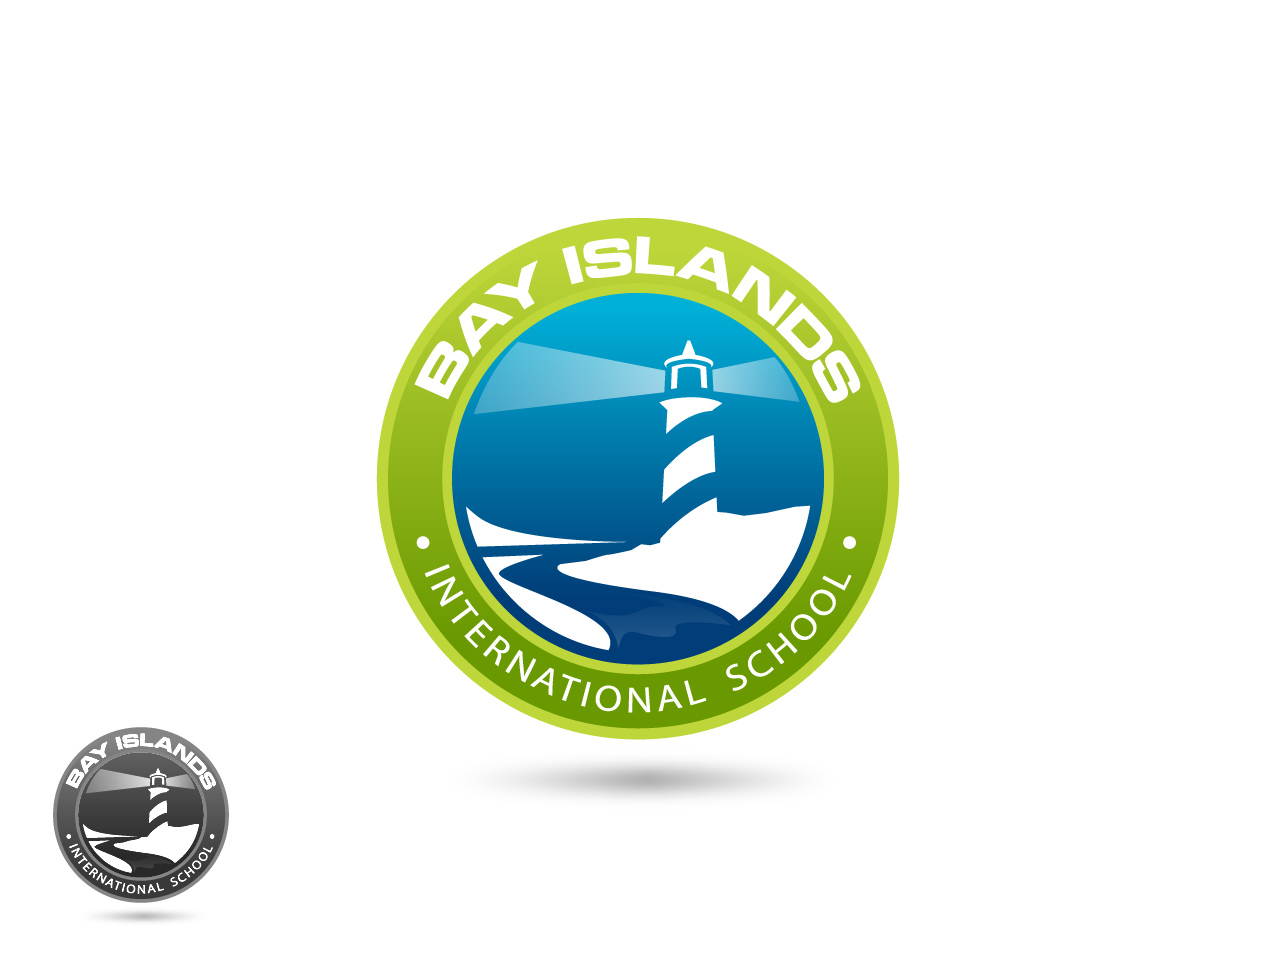 Logo Design by jpbituin - Entry No. 30 in the Logo Design Contest Creative Logo Design for Bay Islands International School.